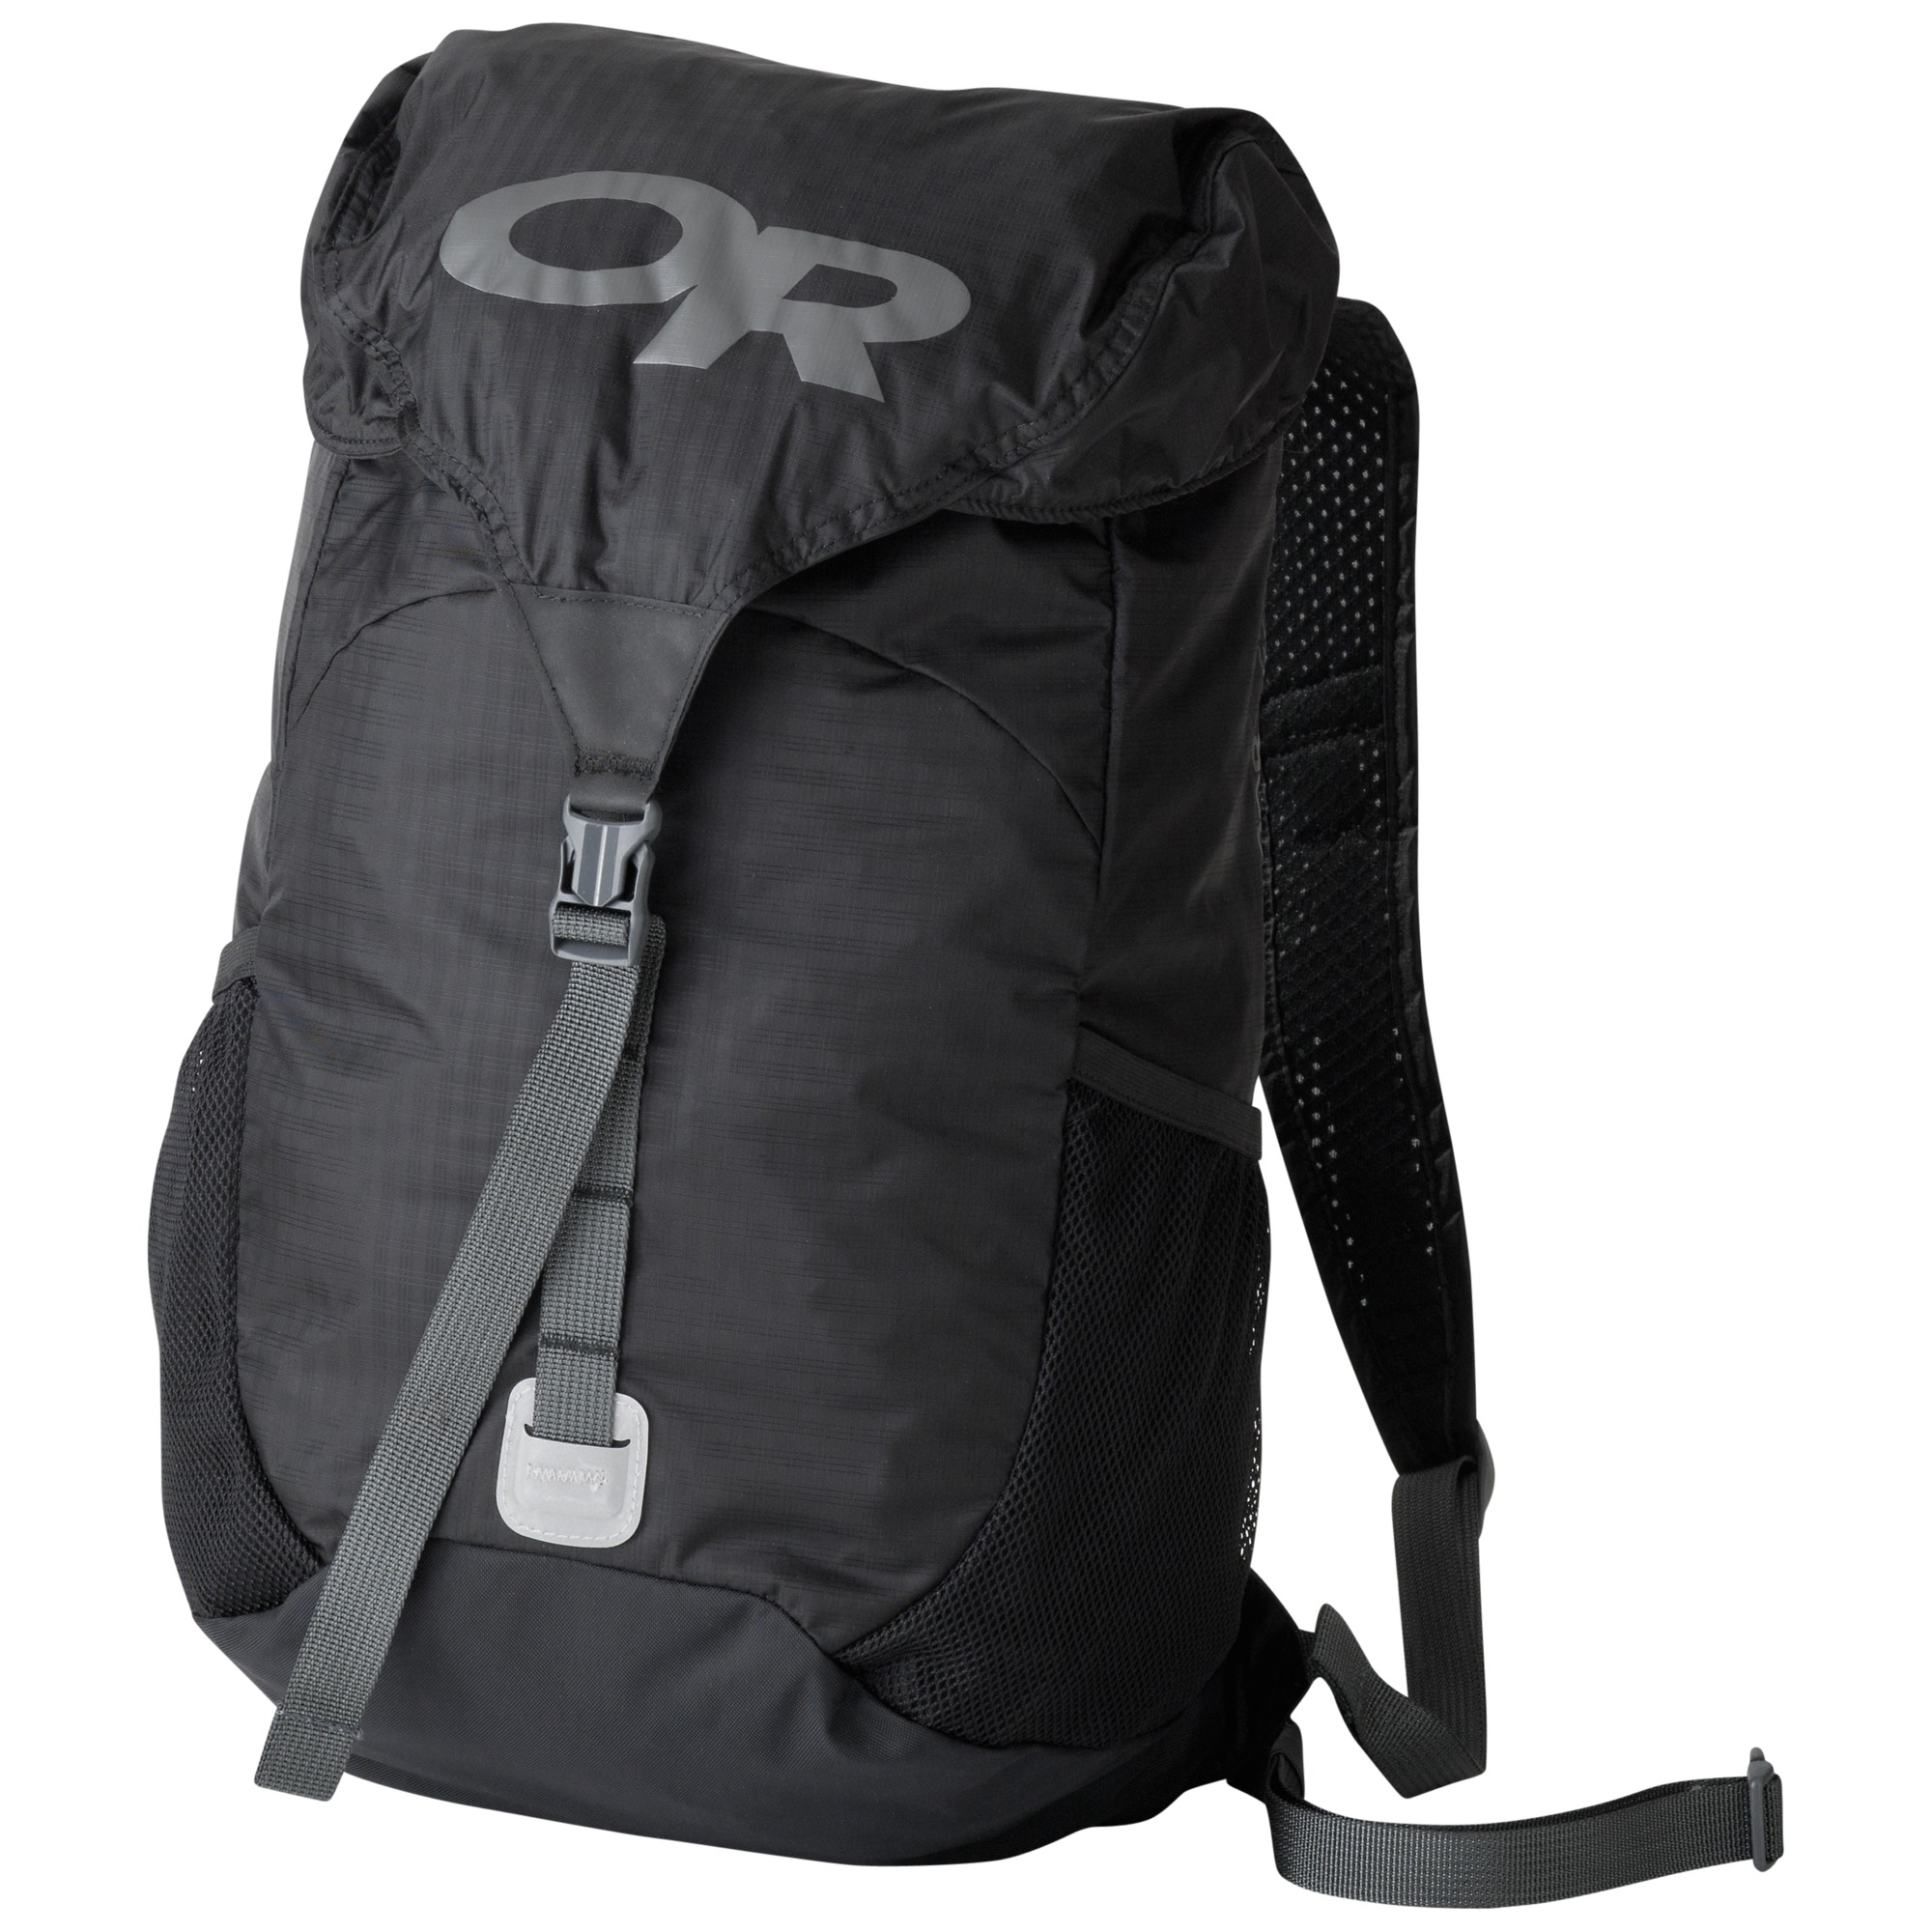 Outdoor Research Isolation Pack HD-black-1size - Gr. 1size